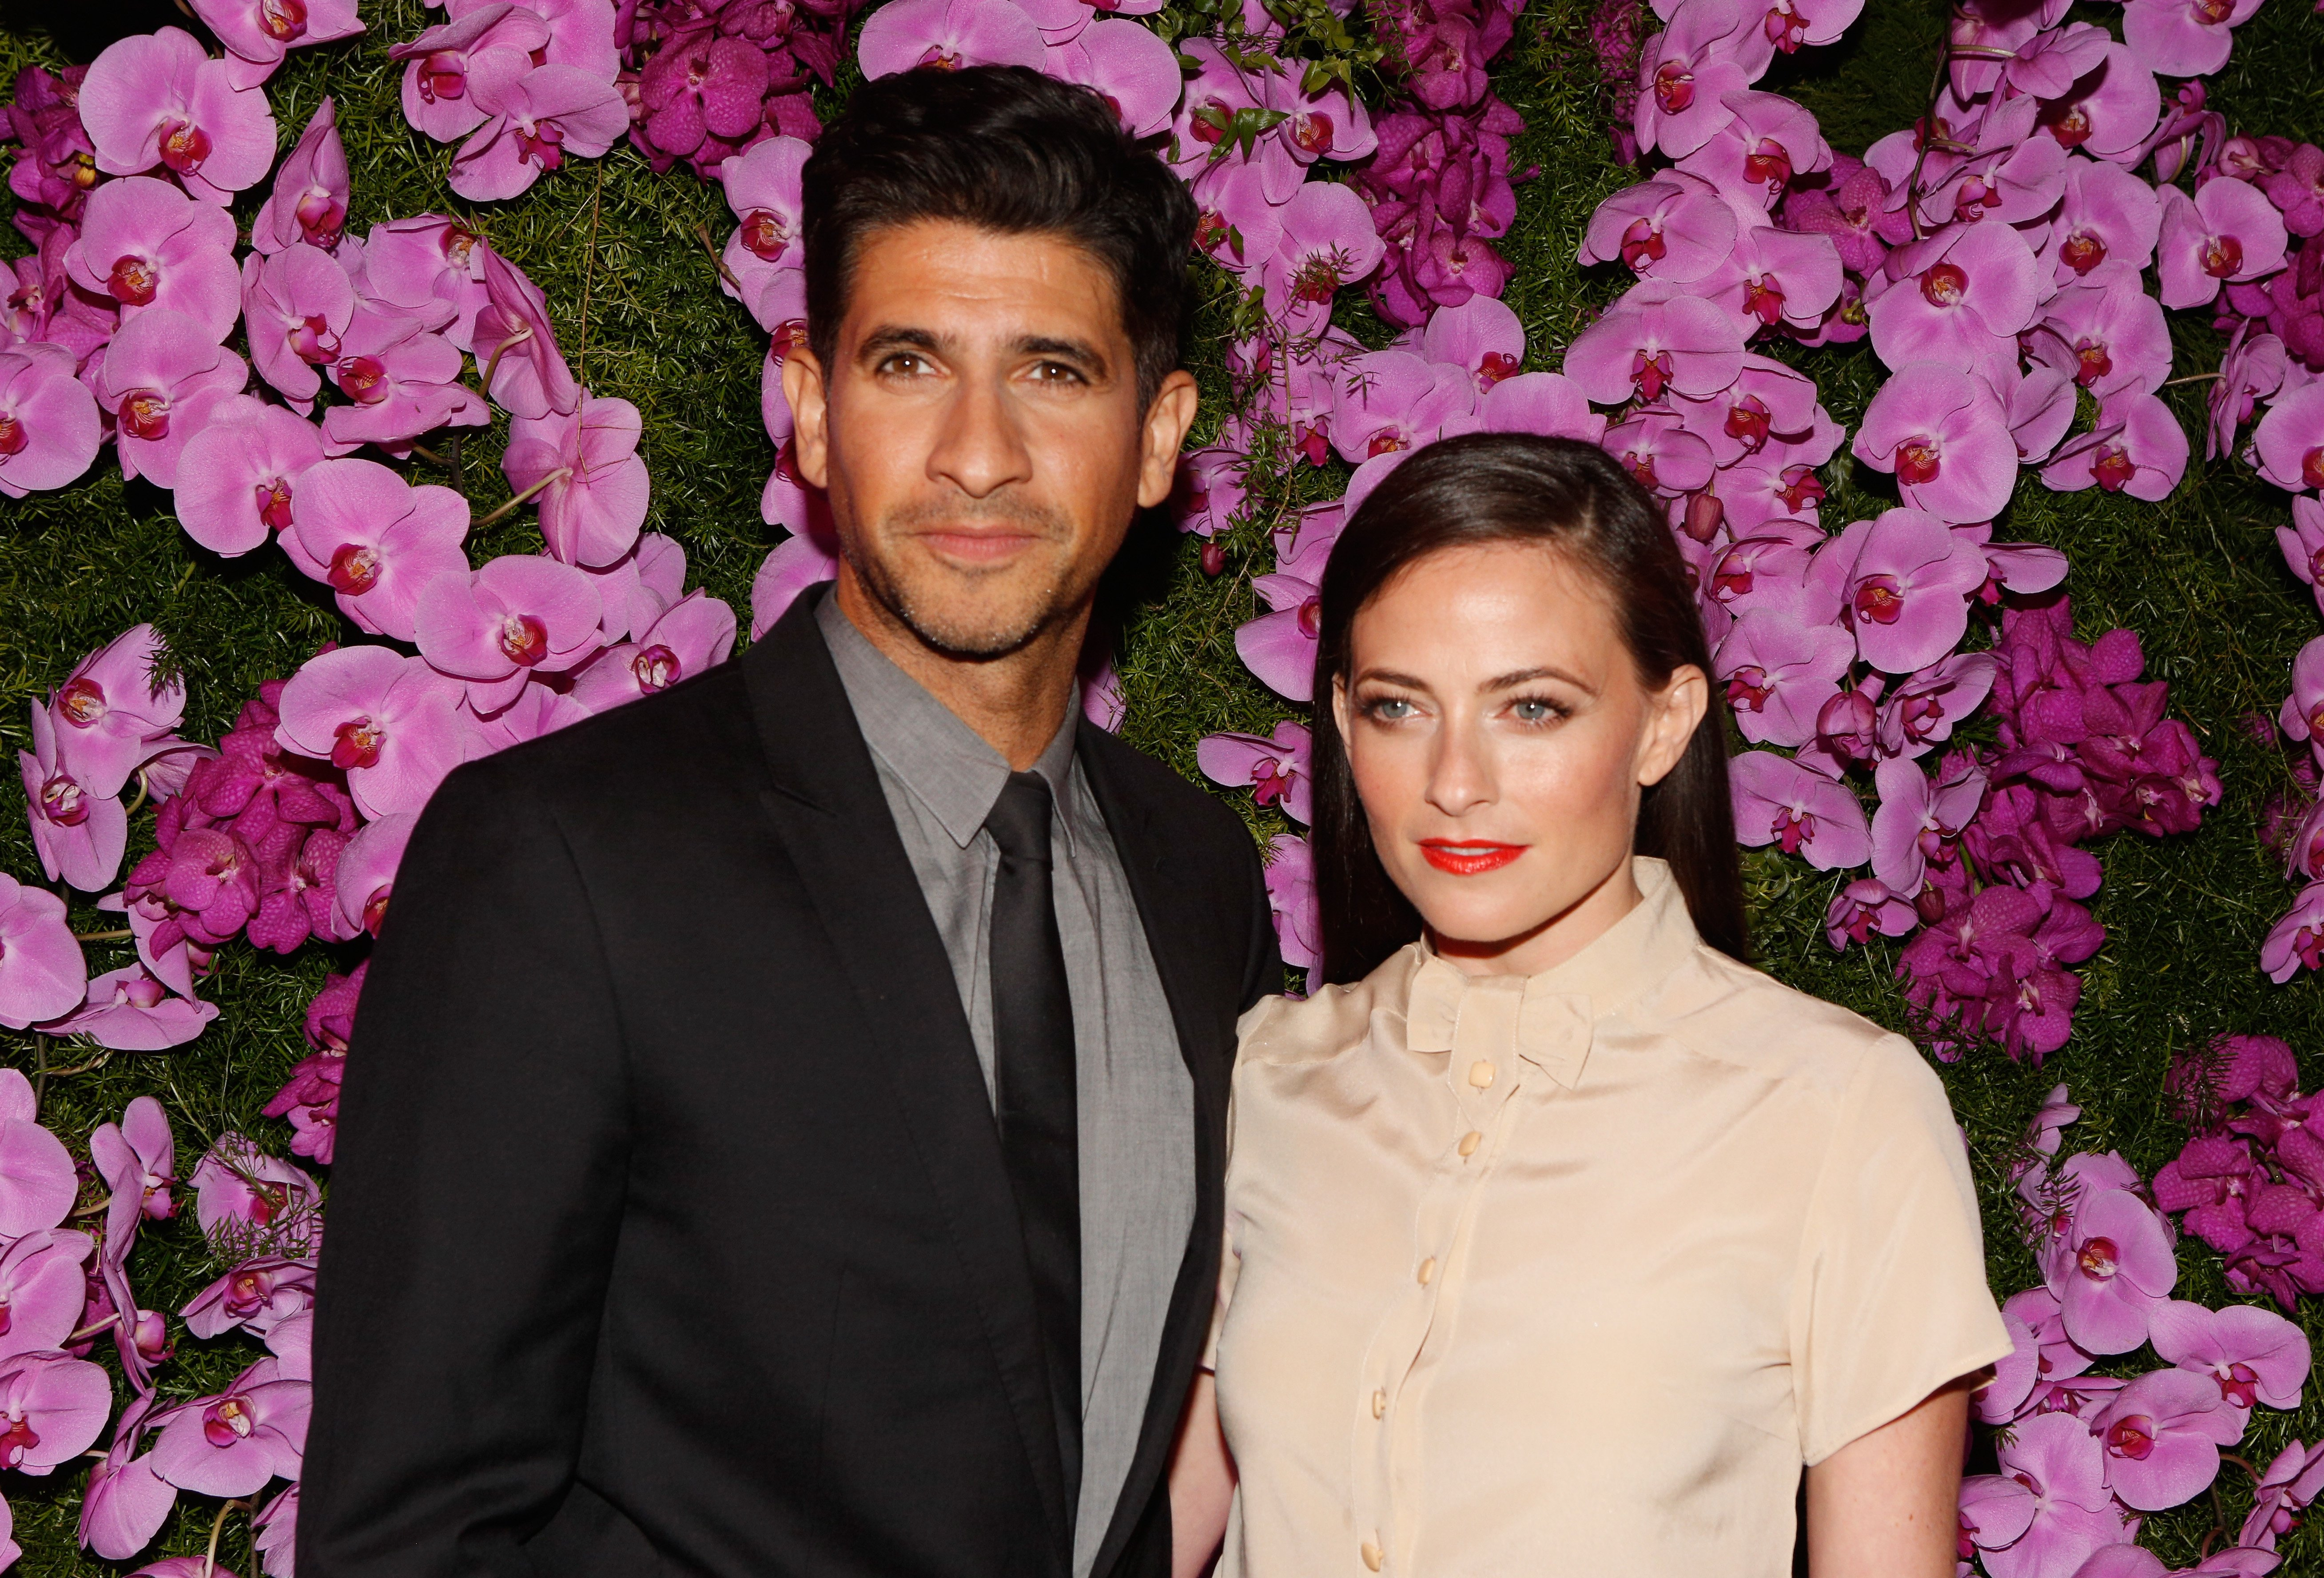 Raza Jaffrey and Lara Pulver attend BVLGARI and Save The Children STOP. THINK. GIVE. Pre-Oscar Event on February 17, 2015 | Photo: GettyImages